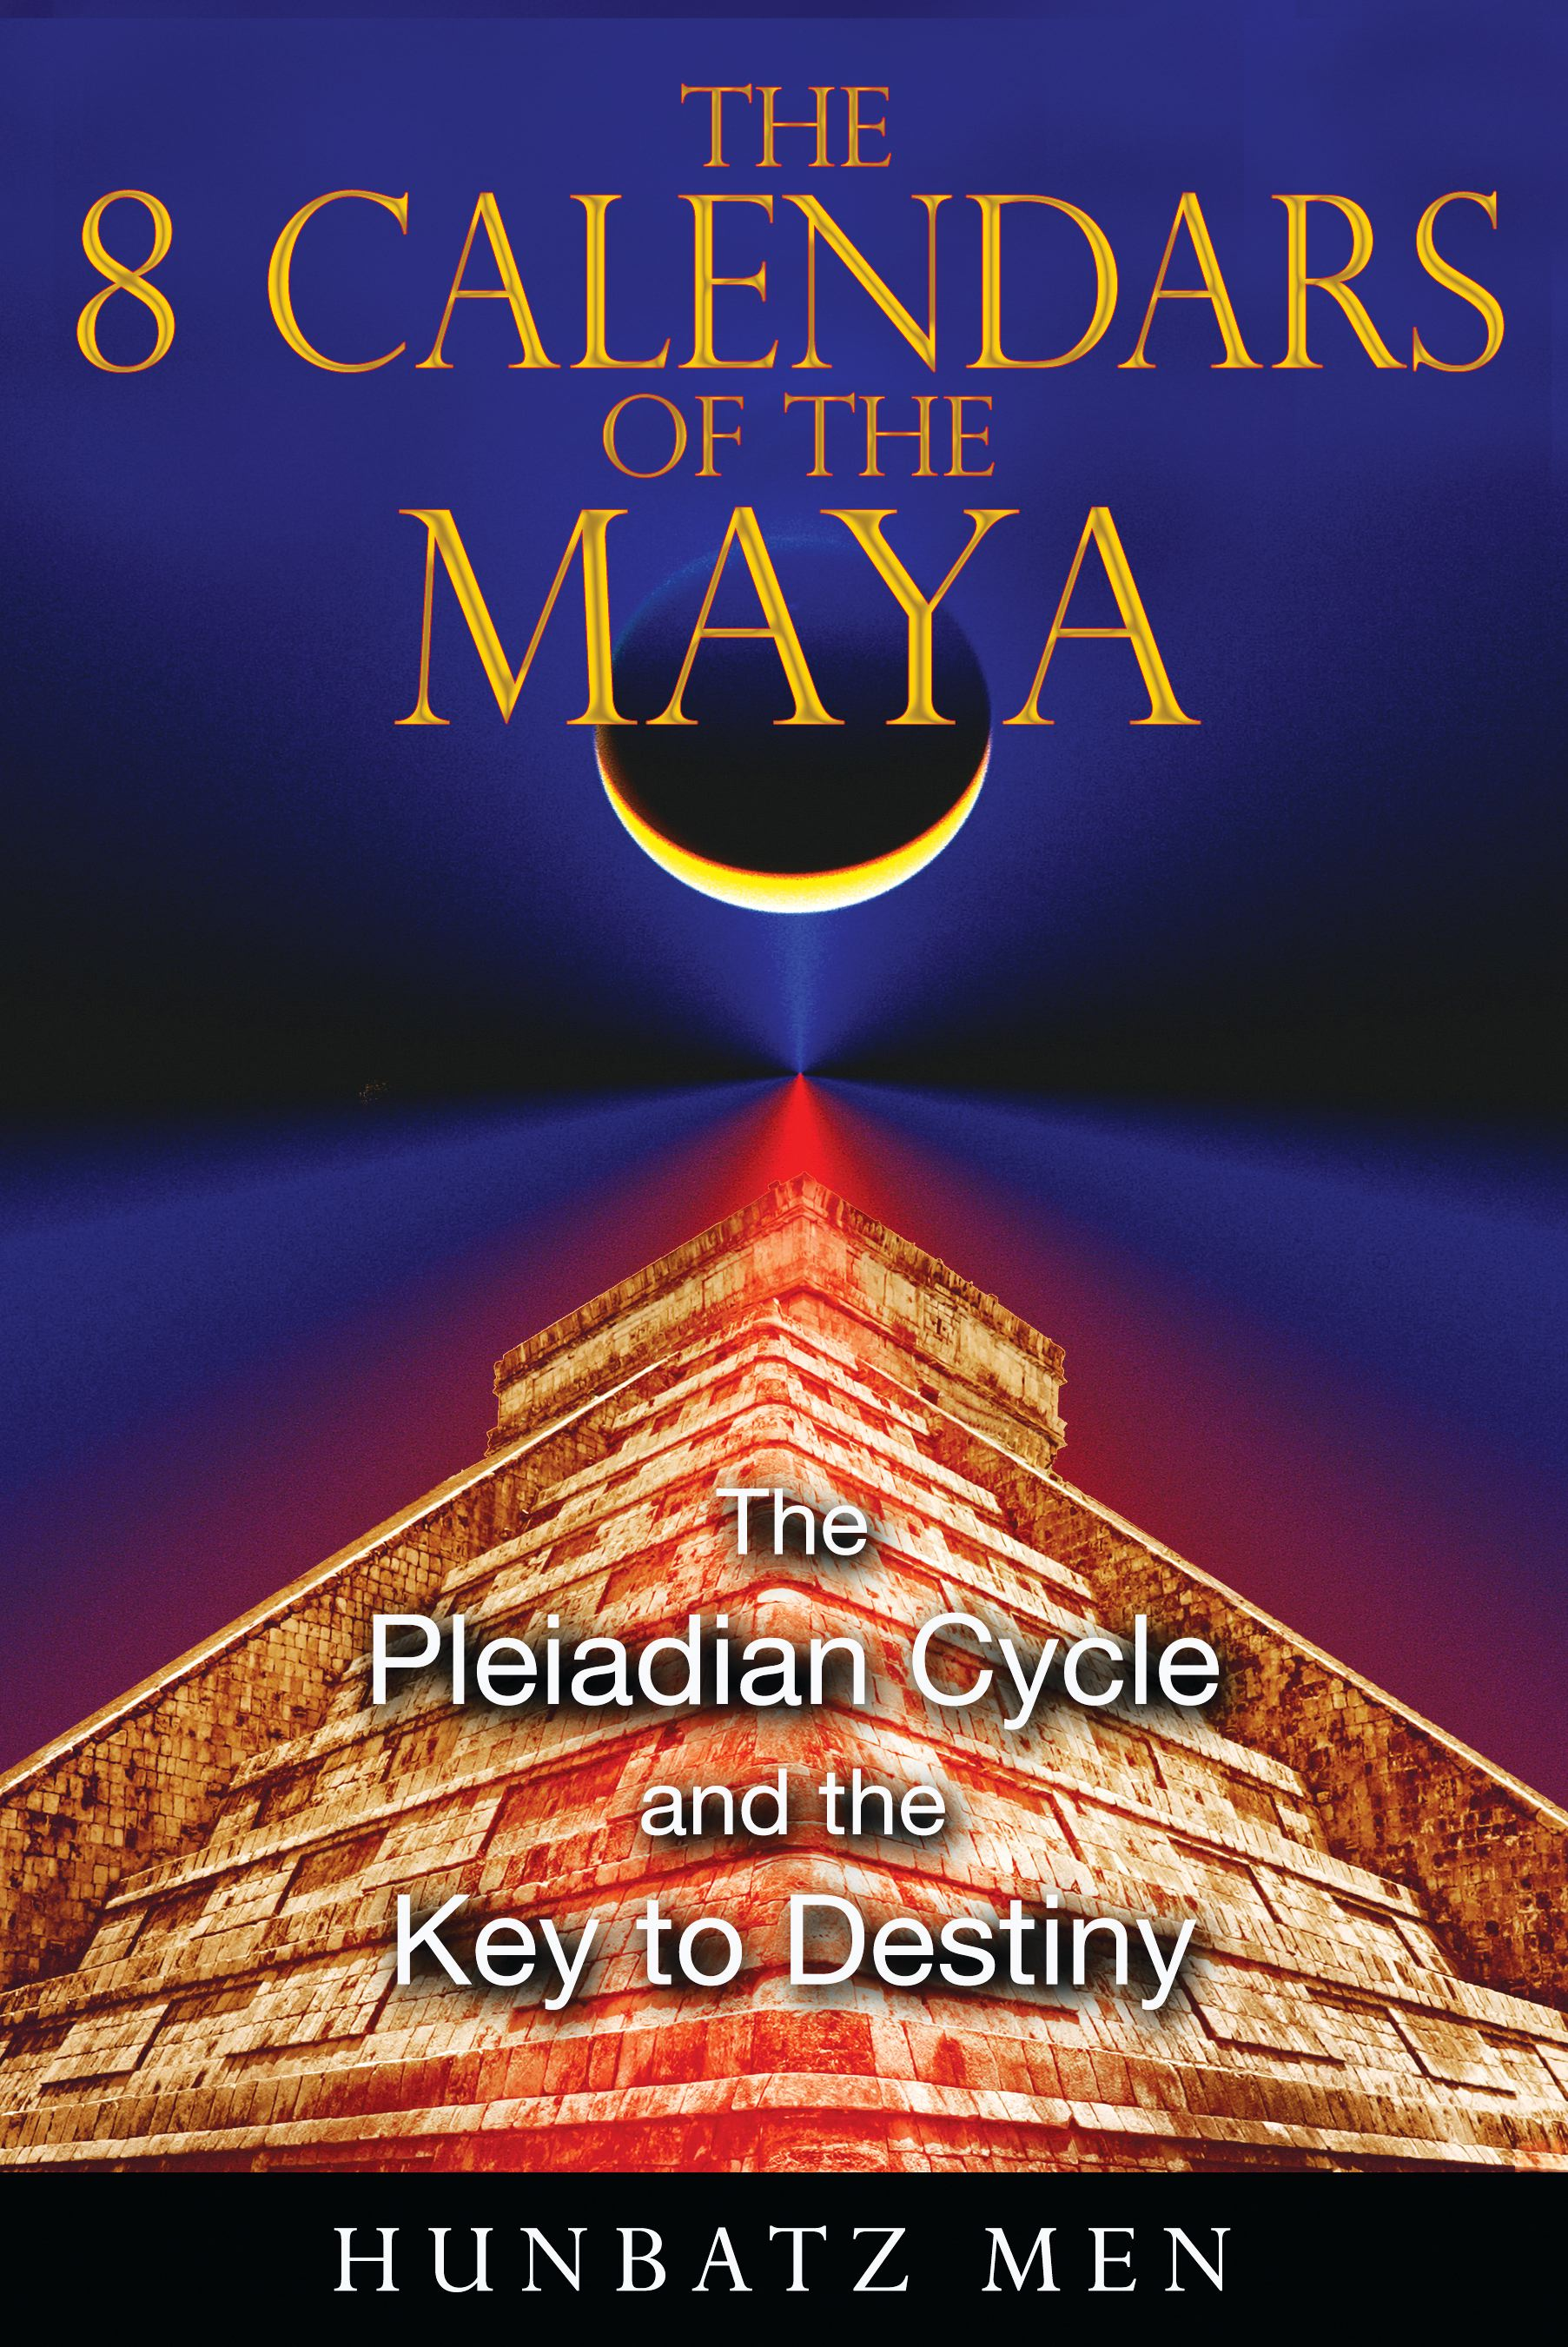 The 8 calendars of the maya 9781591431053 hr